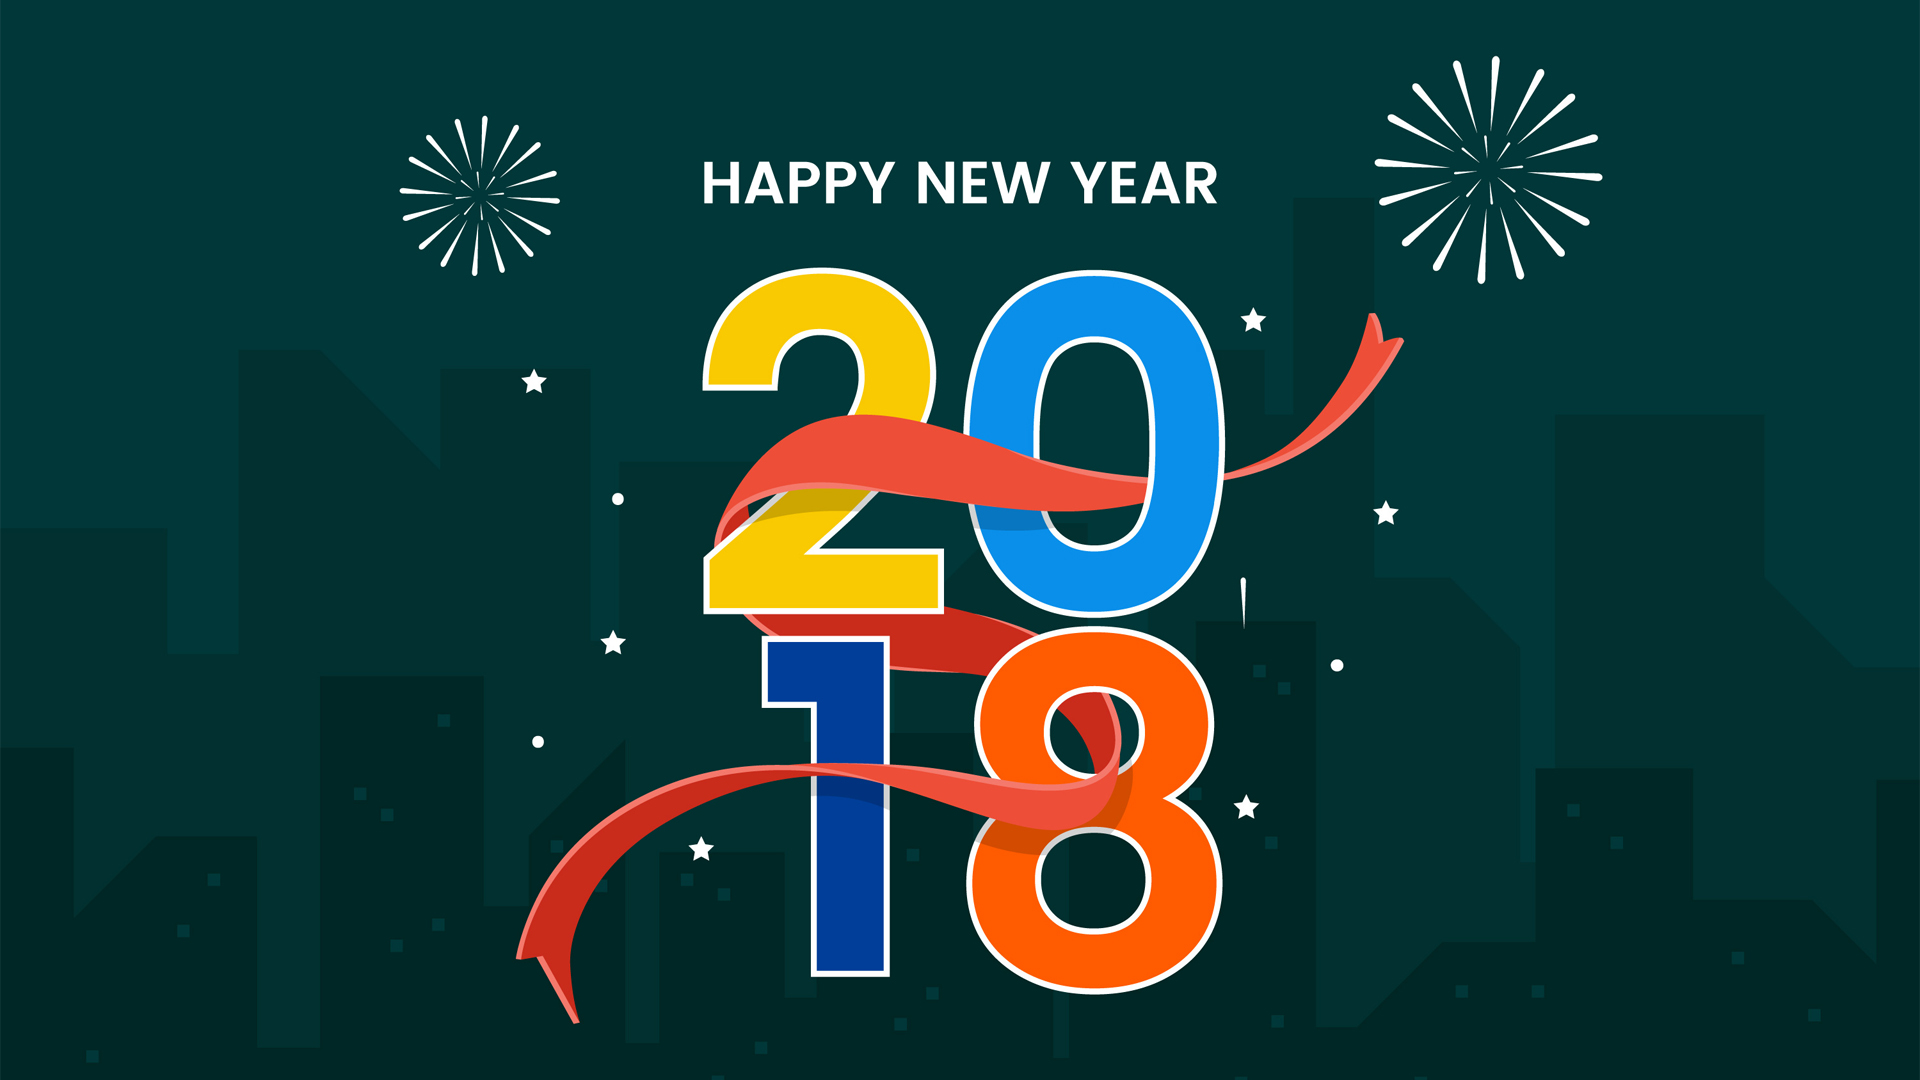 83+] Happy New Year 2018 HD Wallpapers on WallpaperSafari